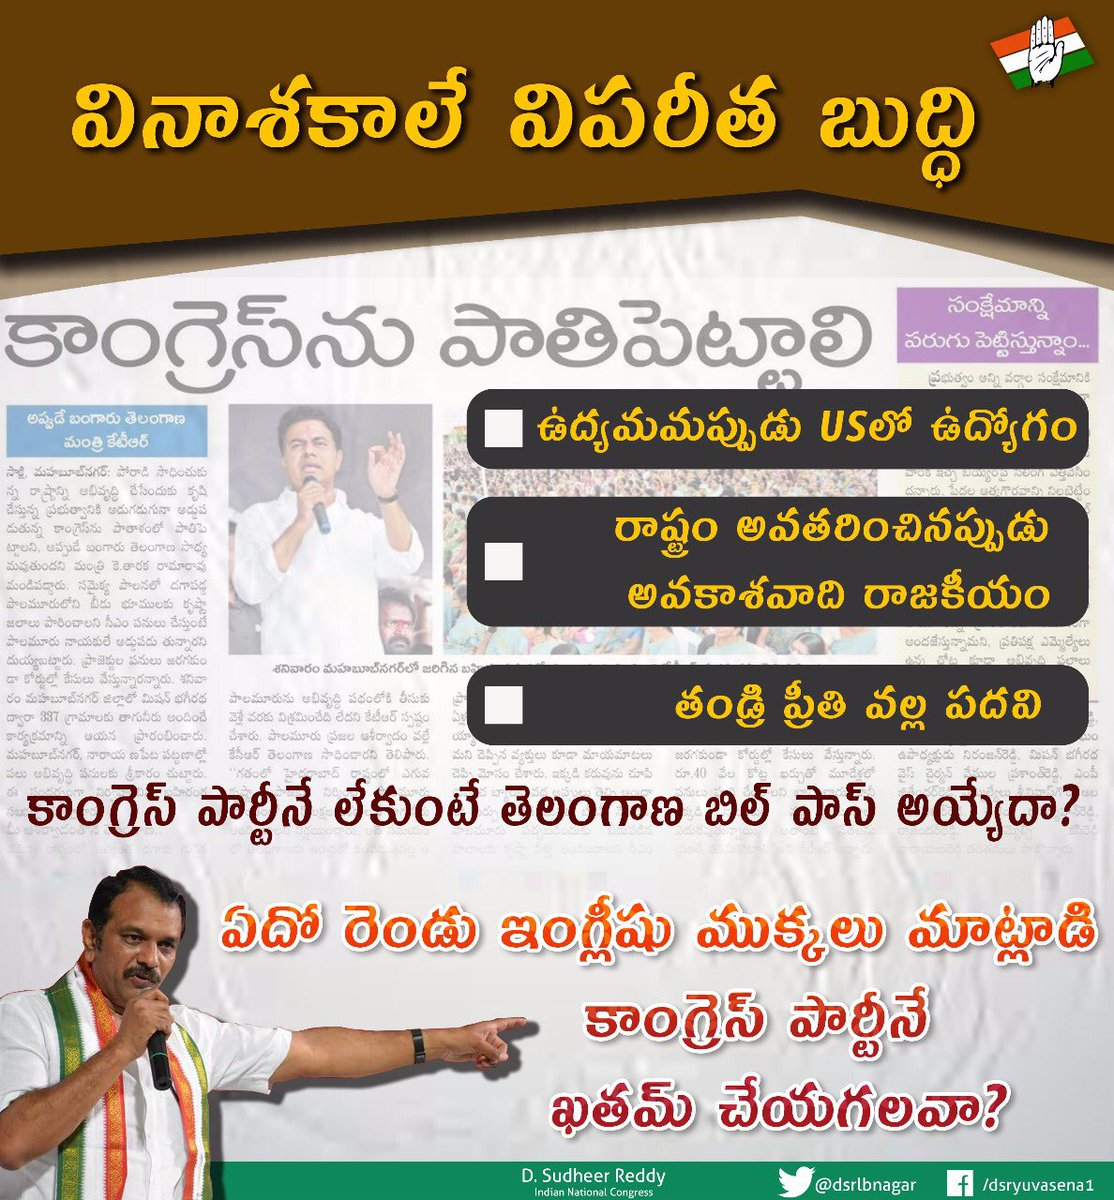 #KTR&#39;s self obsession is evident. Born with a silver spoon &amp; into privileges, he is not concerned with people&#39;s problems. #Telangana will <br>http://pic.twitter.com/HcTlB9DEYG